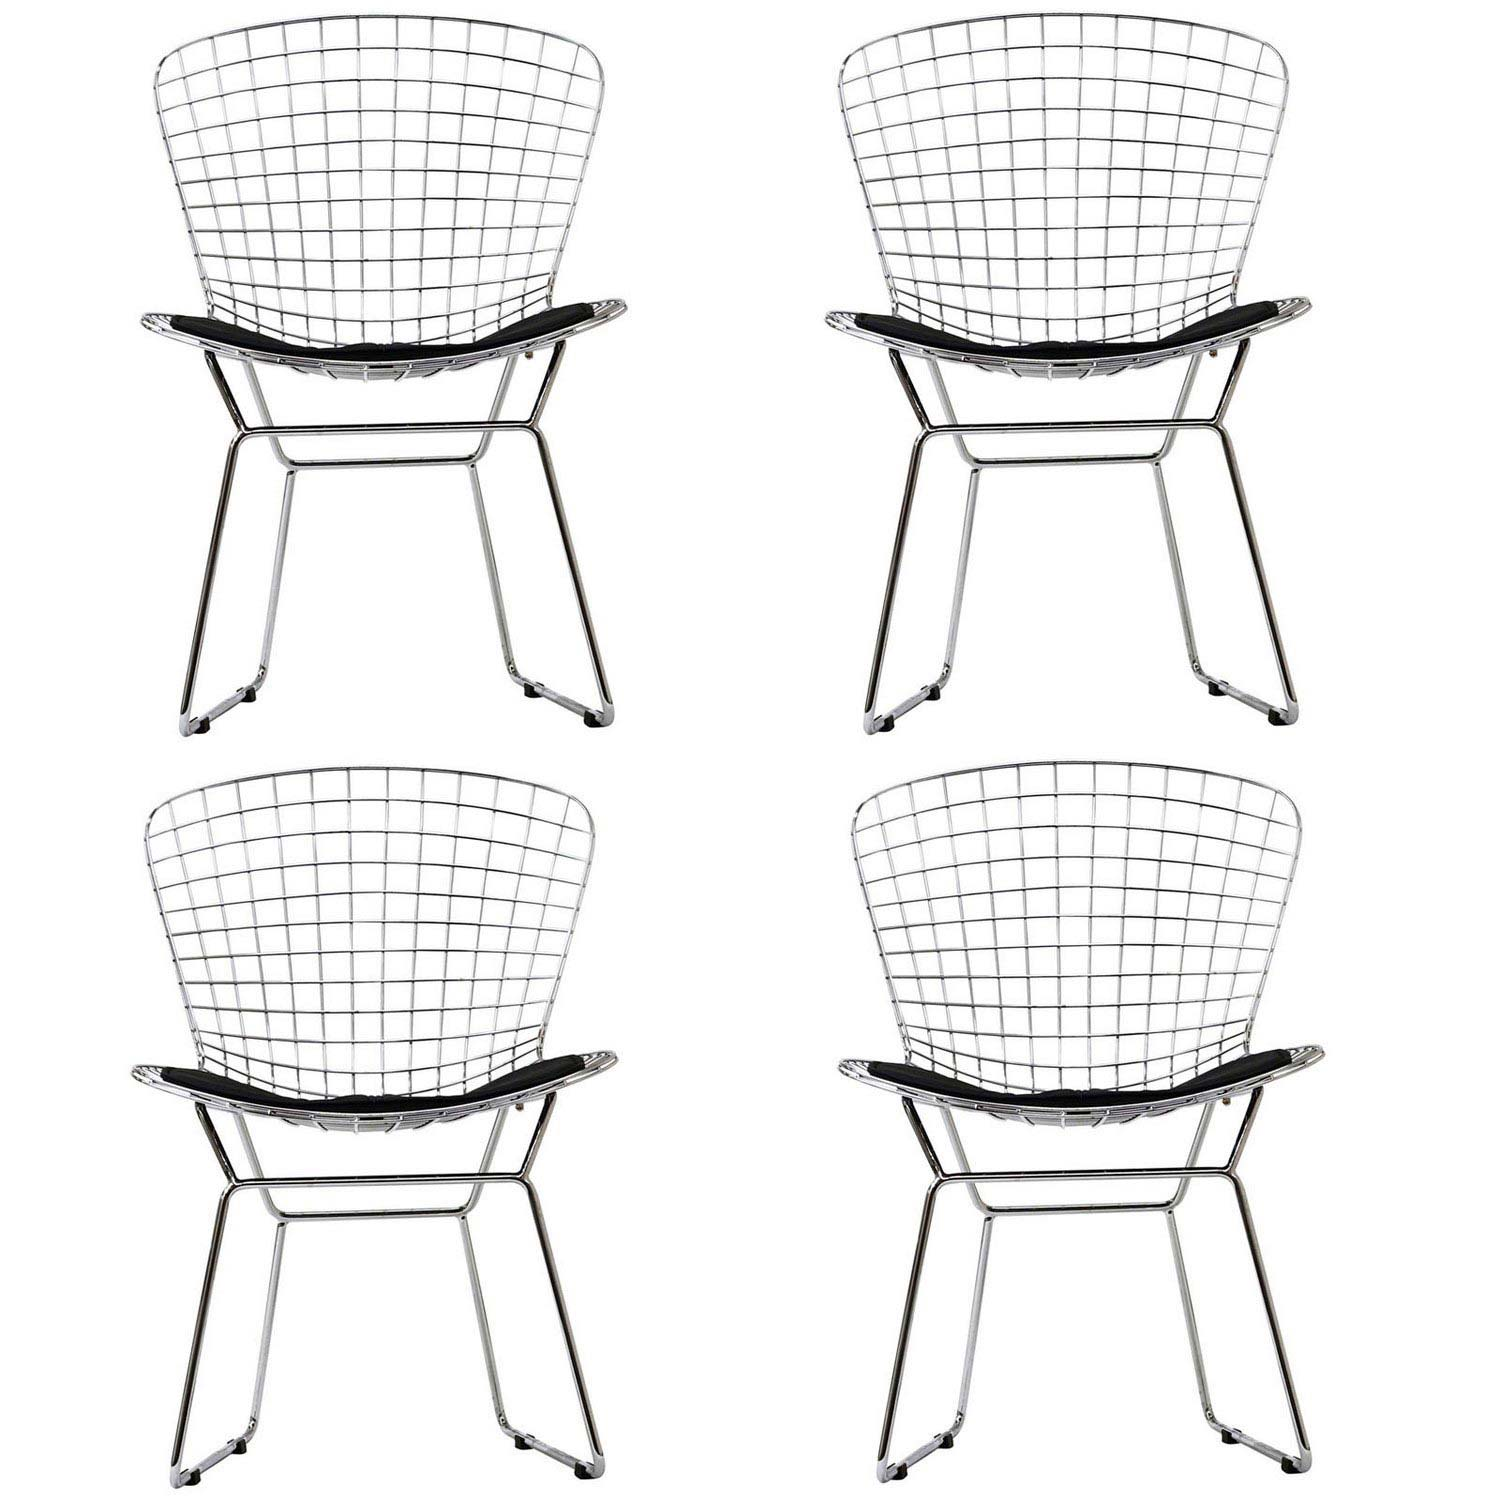 Modway CAD Dining Chairs Set of 4 - Black